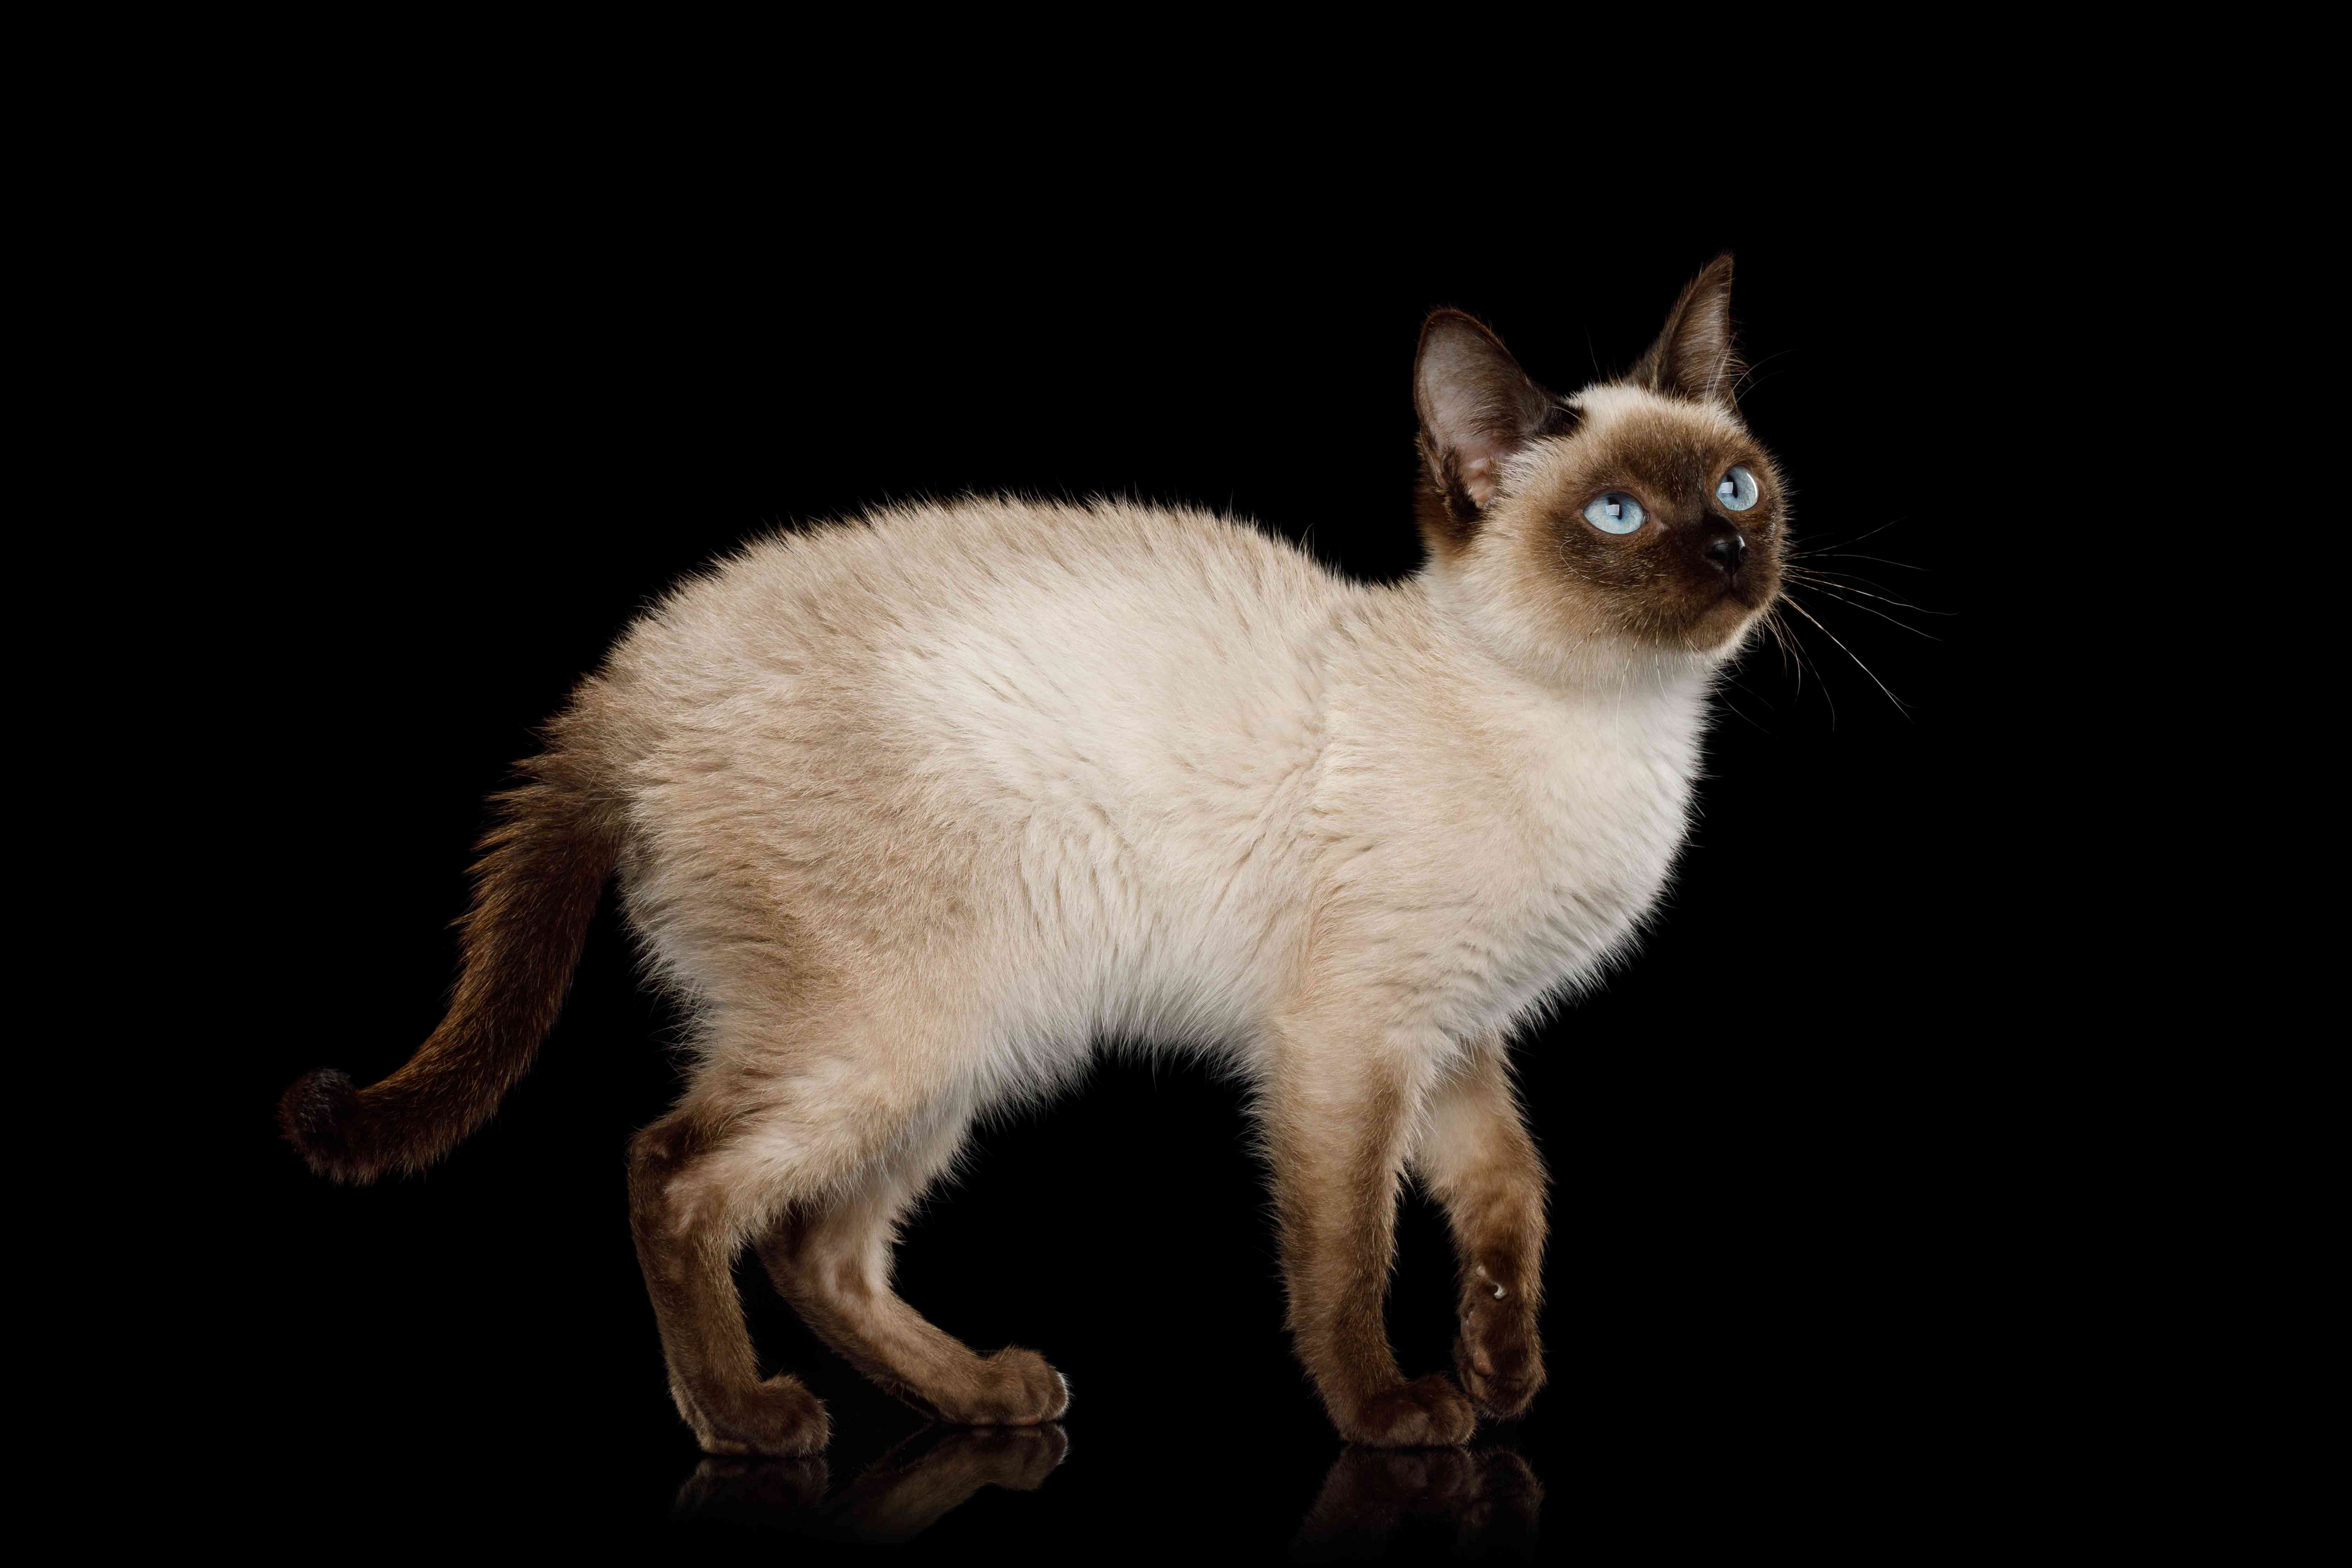 Scyth Toy Bob, the most smallest Cat on Isolated Black Background